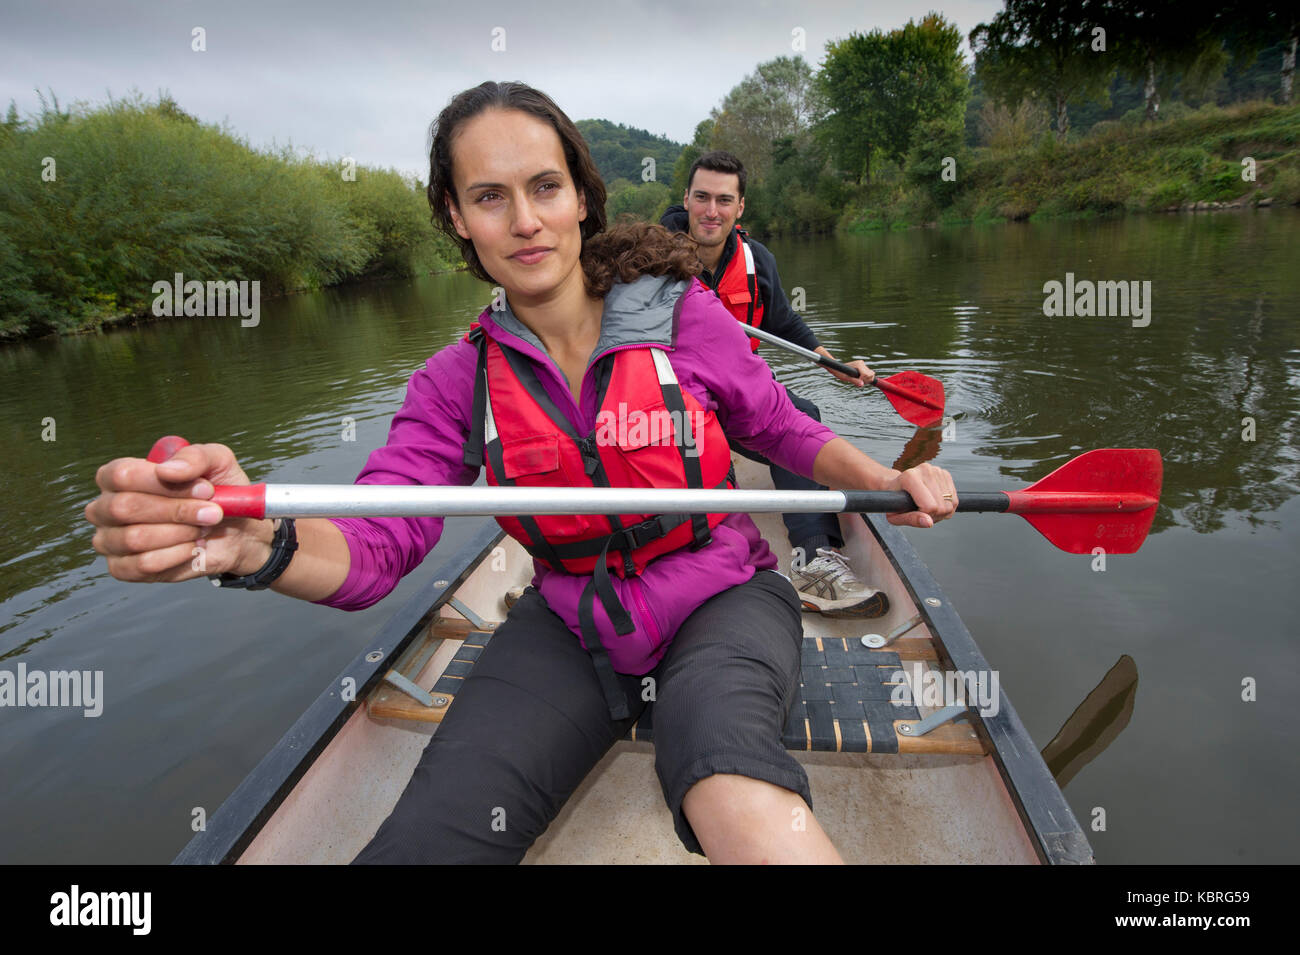 Broadcaster, model, anthropologist Mary-Ann Ochota canoing with her husband Joe Craig on the River Severn with their Stock Photo